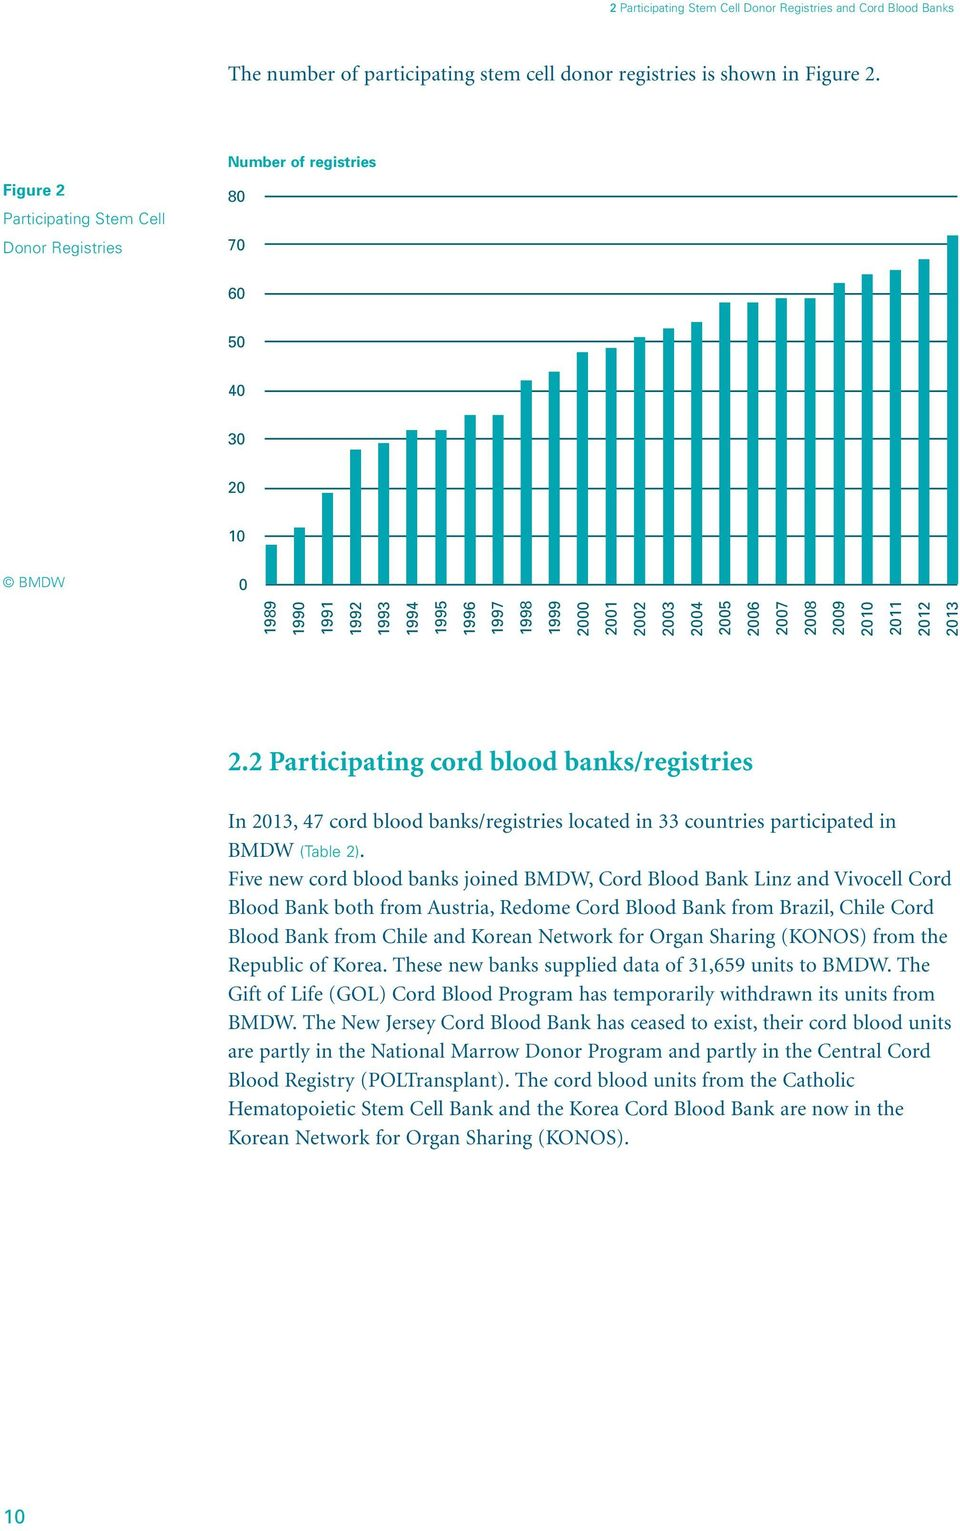 2008 2009 2010 2011 2012 2013 2.2 Participating cord blood banks/registries In 2013, 47 cord blood banks/registries located in 33 countries participated in BMDW (Table 2).